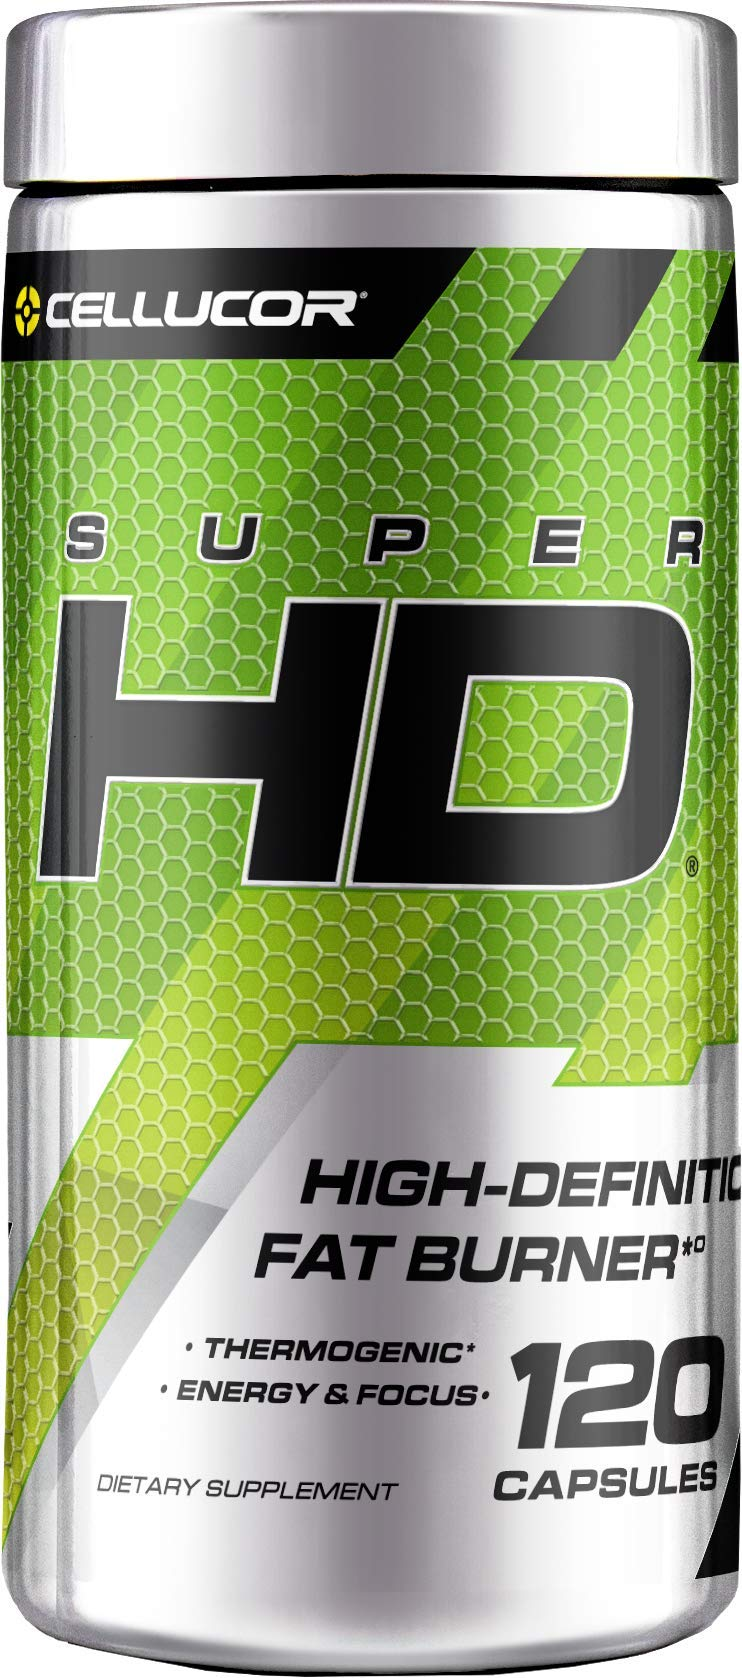 Cellucor SuperHD Thermogenic Fat Burner & Energy Booster for Men & Women, Antioxidant & Weight Loss Supplement with Nootropic Focus, 120 Capsules by Cellucor